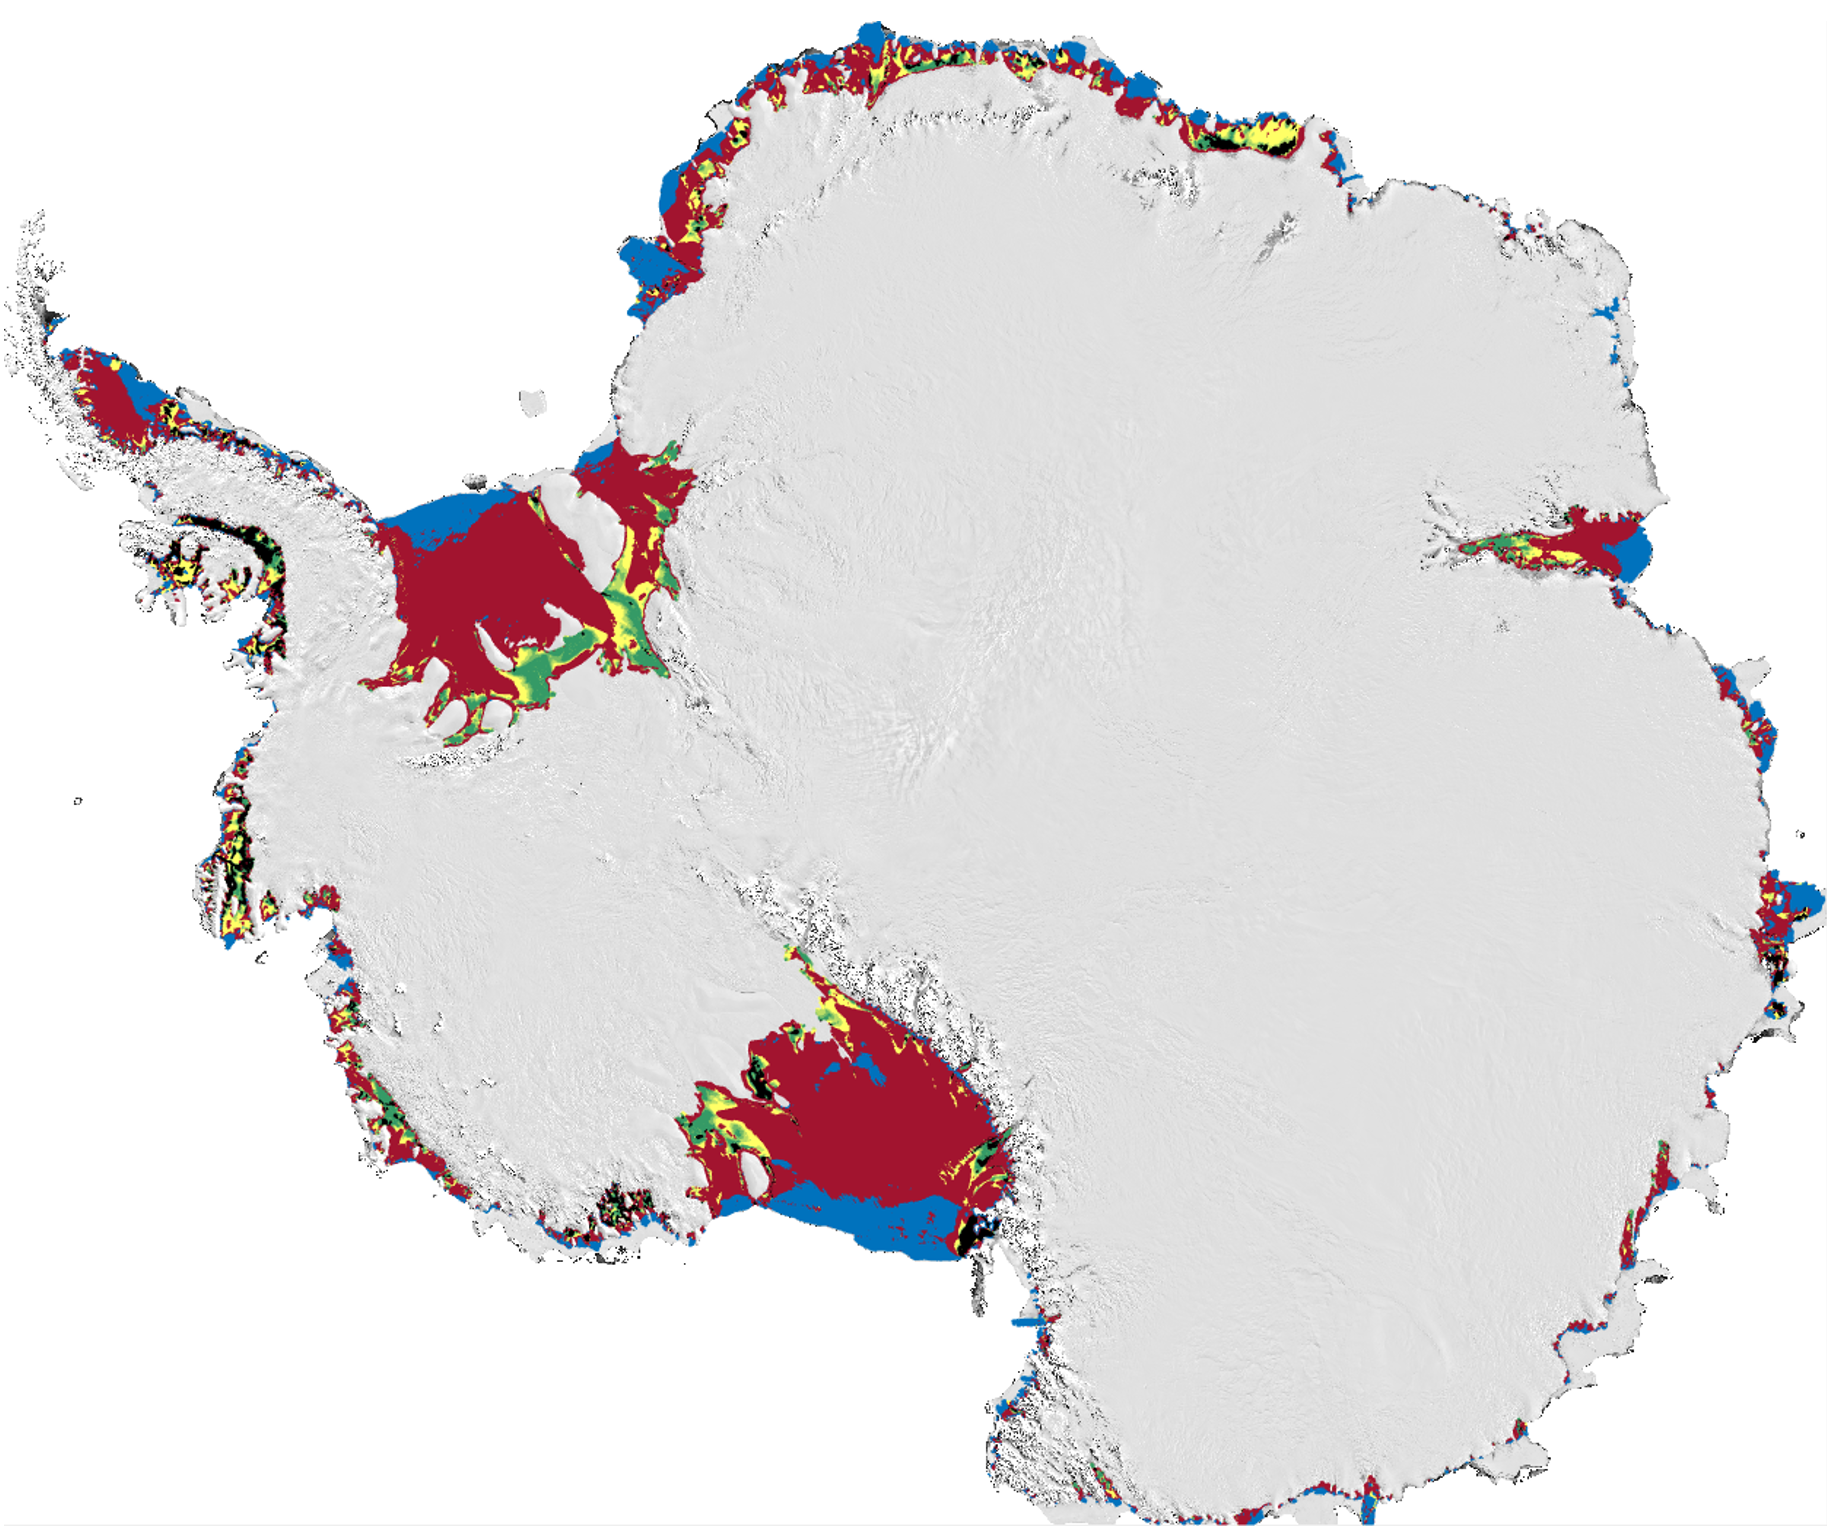 Meltwater could erode Antarctica ice shelves, study finds